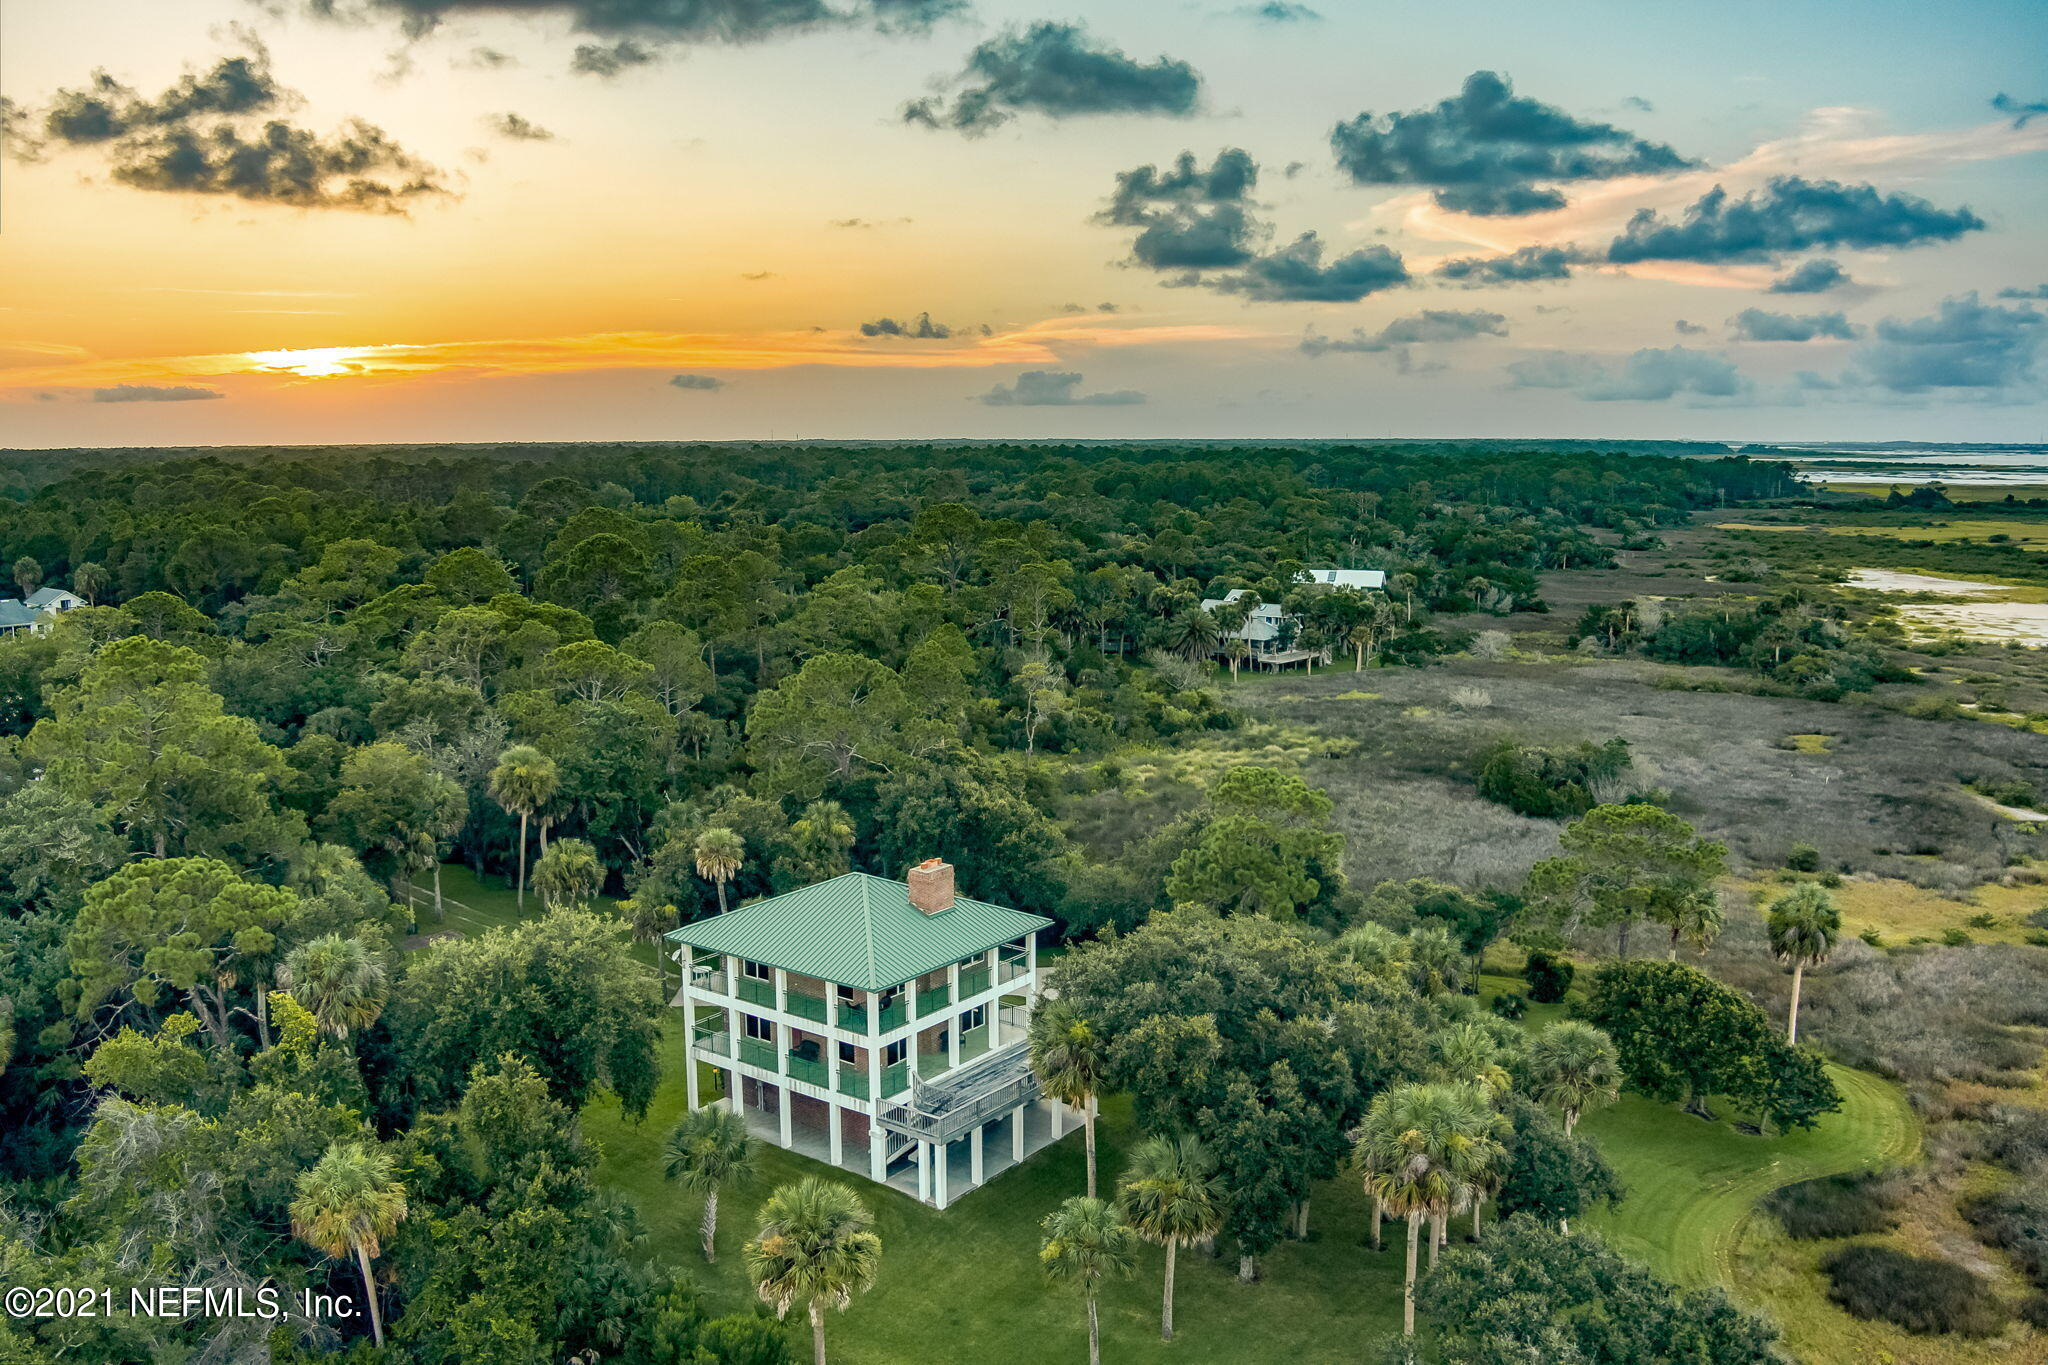 6.5 acres of solitude. A peaceful retreat on the shores of the Matanzas river bordered by ICW marsh front and the Matanzas St. Forest. Natures best is viewed from most every window in this amazing property. Nestled in an enclave of large parcel properties, this is a rare find and a very unique offering. The property includes a 3 story masonry/brick home that boasts views from every window. 2 Bedrooms and 4 baths in this secluded getaway. 2 large oversize garage spaces in the house plus a heated and cooled custom garage/barn for the most discriminating car aficionado or wood worker hobbyist. The barn has closed cell foam insulation under roof to add to its high degree of insulation. Concrete block/brick veneer pump house and storage shed match the façade of the home for architectural continuity. There are many upgrades and features to this property so please view the attached documents. Also, attached are the survey and the elevation certificates. A private lake and some wetlands add to the privacy and attract abundant wildlife including eagles, osprey, deer and otter. An electronic gate adds to the security of your property and keeps unwanted guests away. Deep into the forest off State Road 206, there is virtually no outside noise except for the sounds of nature as you sway peacefully in your hammock that you will place on the deck facing the Intracoastal Waterway for a morning sunrise or afternoon respite.